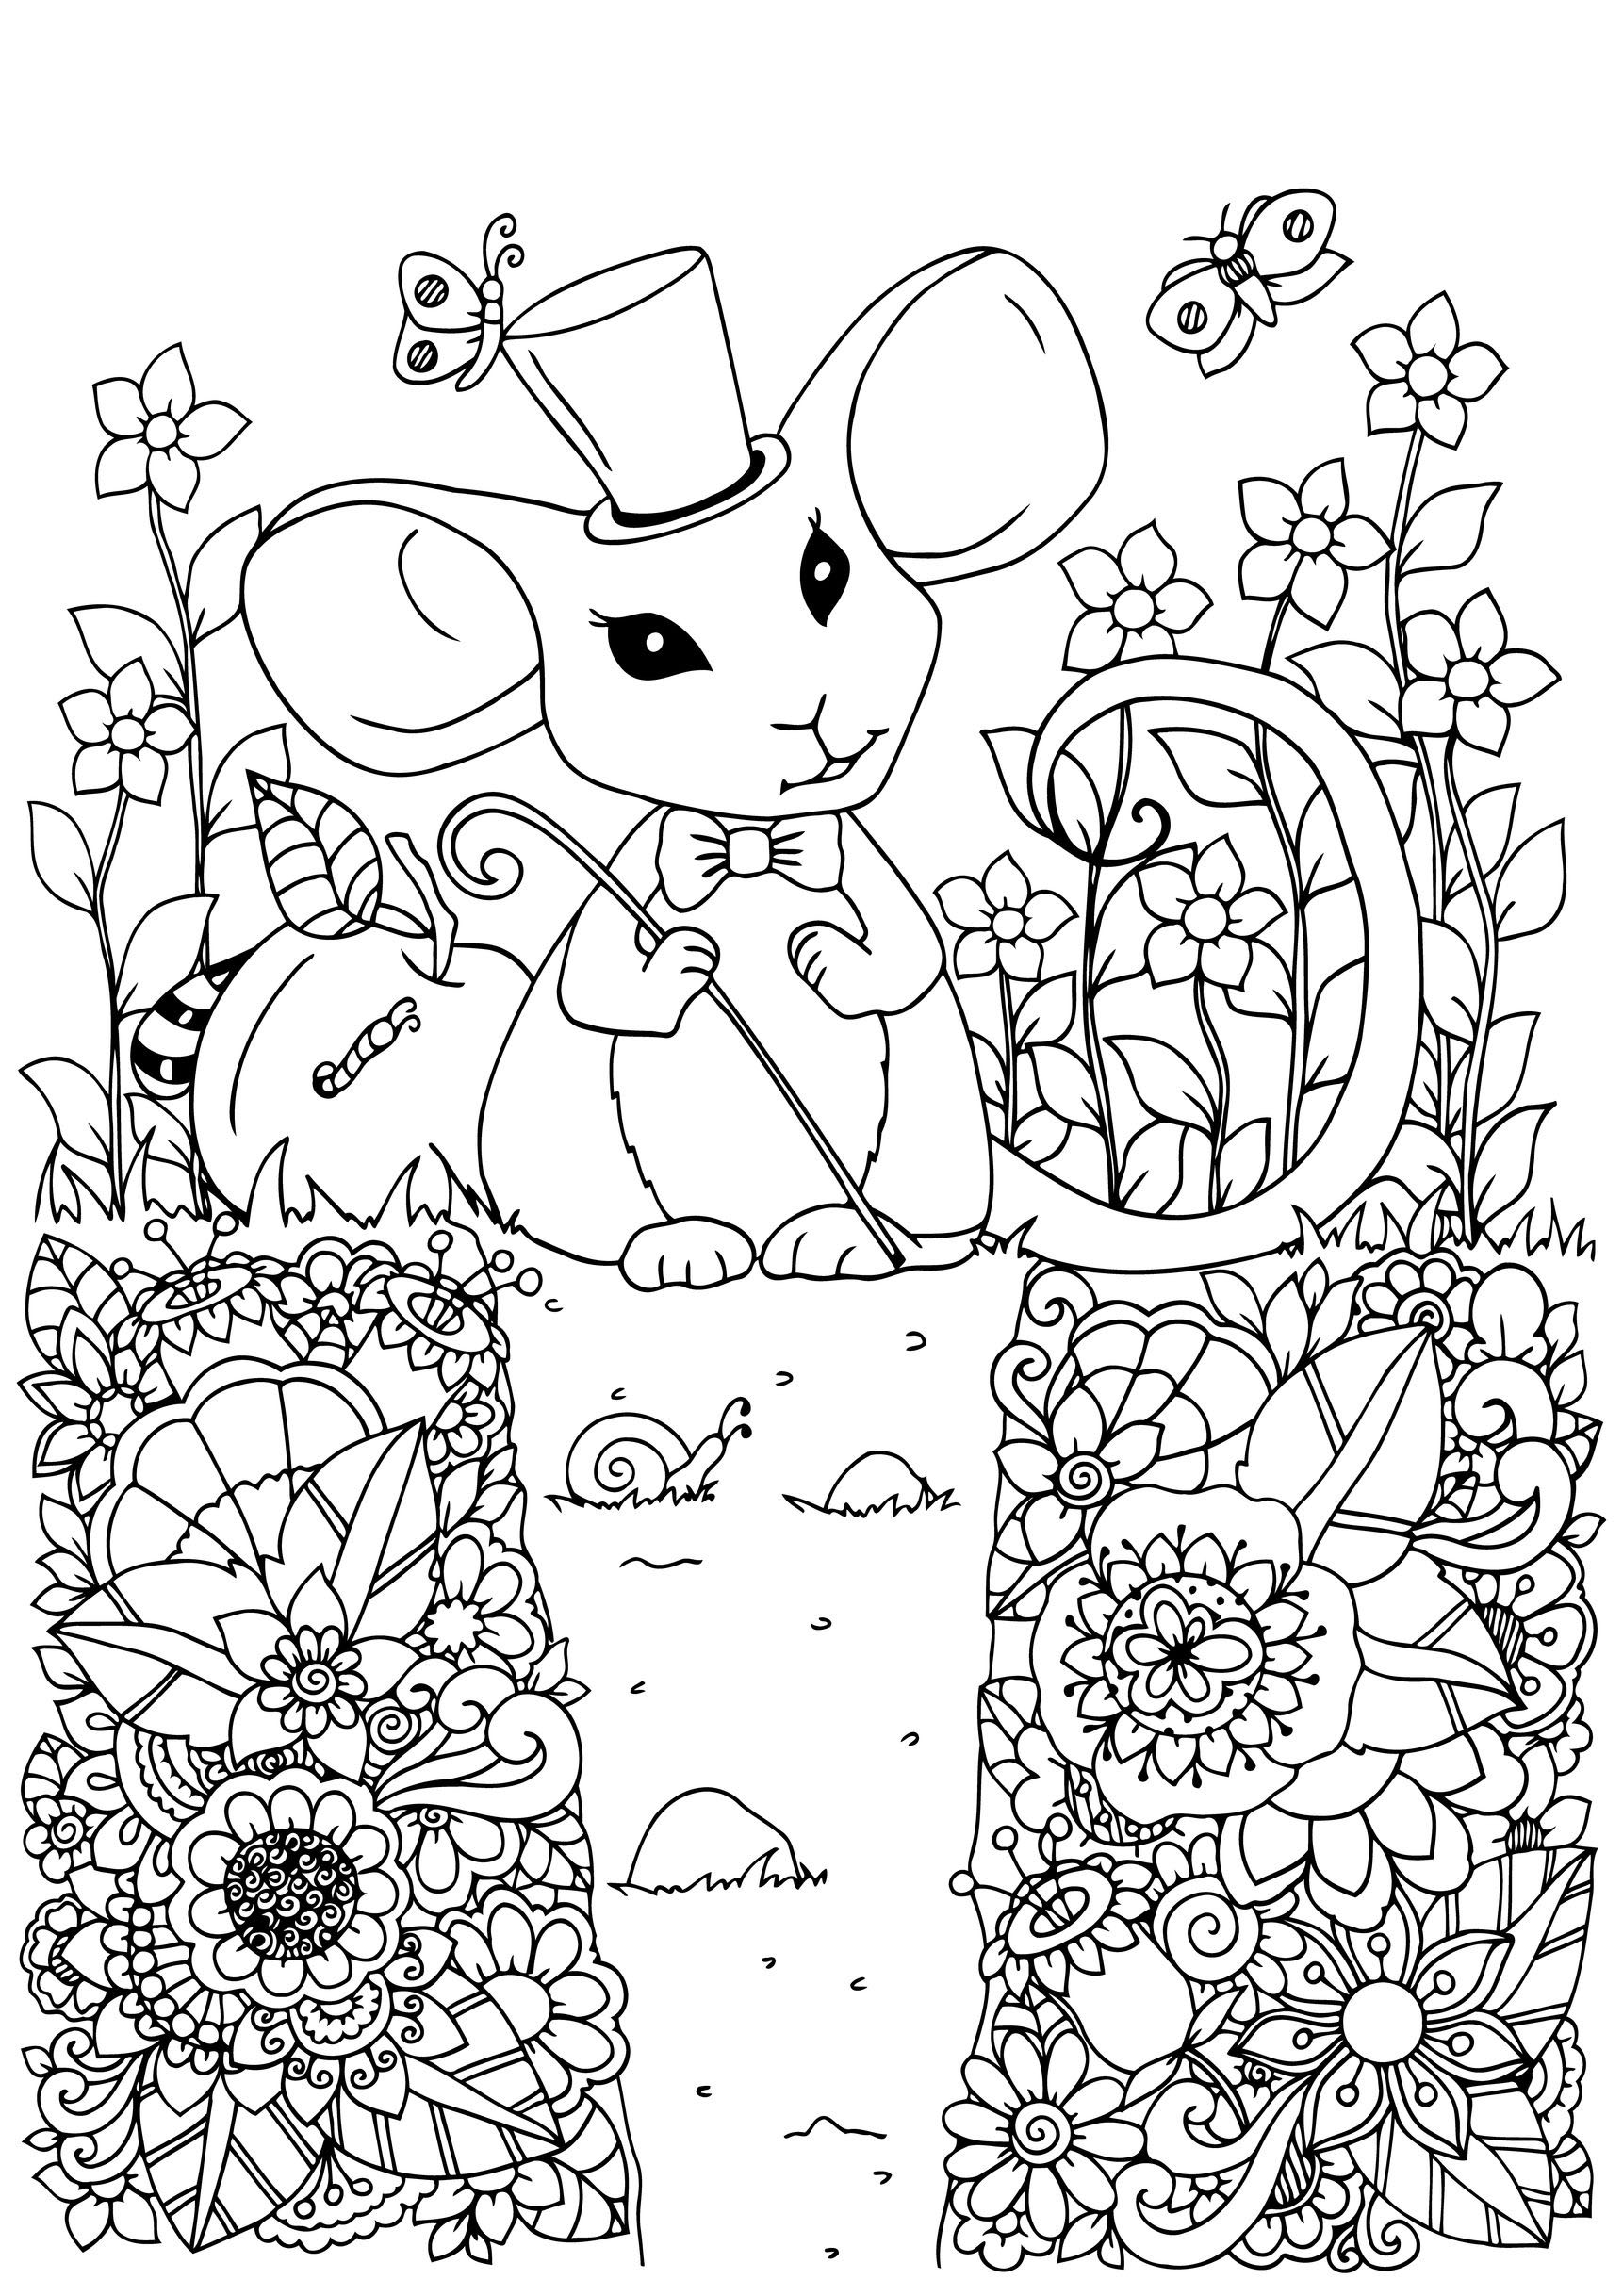 mice coloring pages mouse coloring pages to download and print for free coloring mice pages